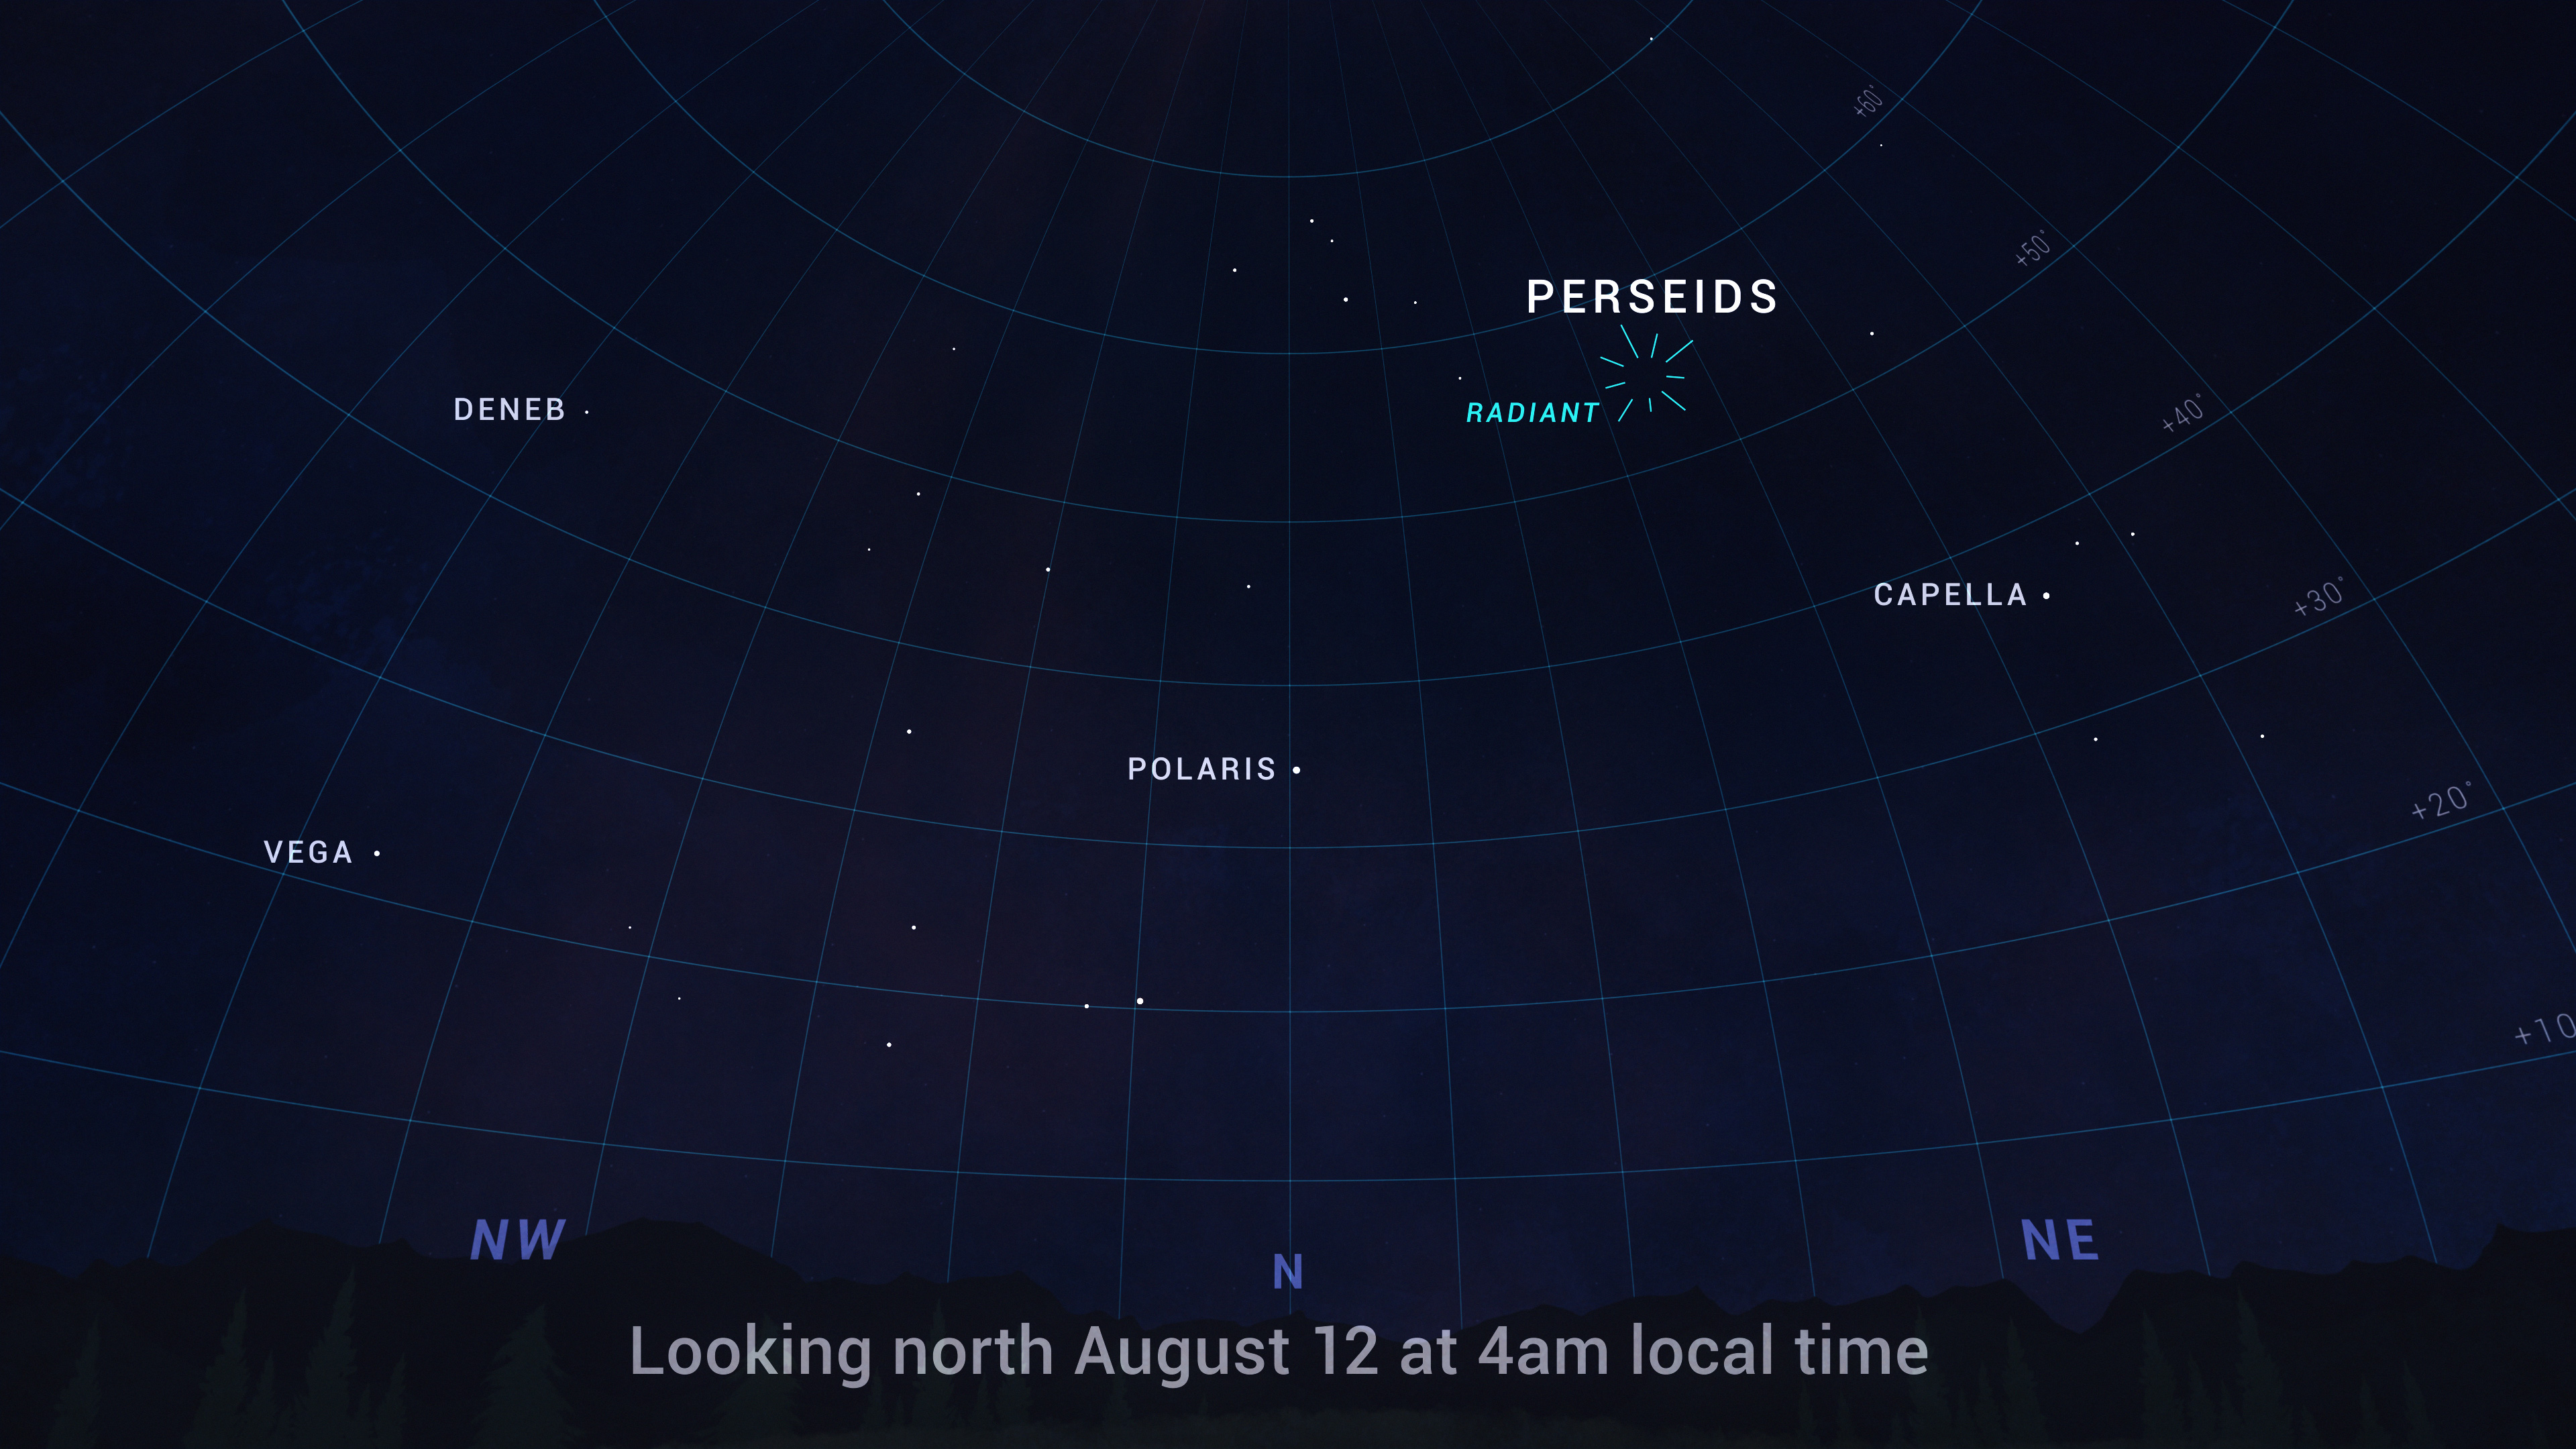 Sky chart showing the location of the radiant for the Perseid meteors.